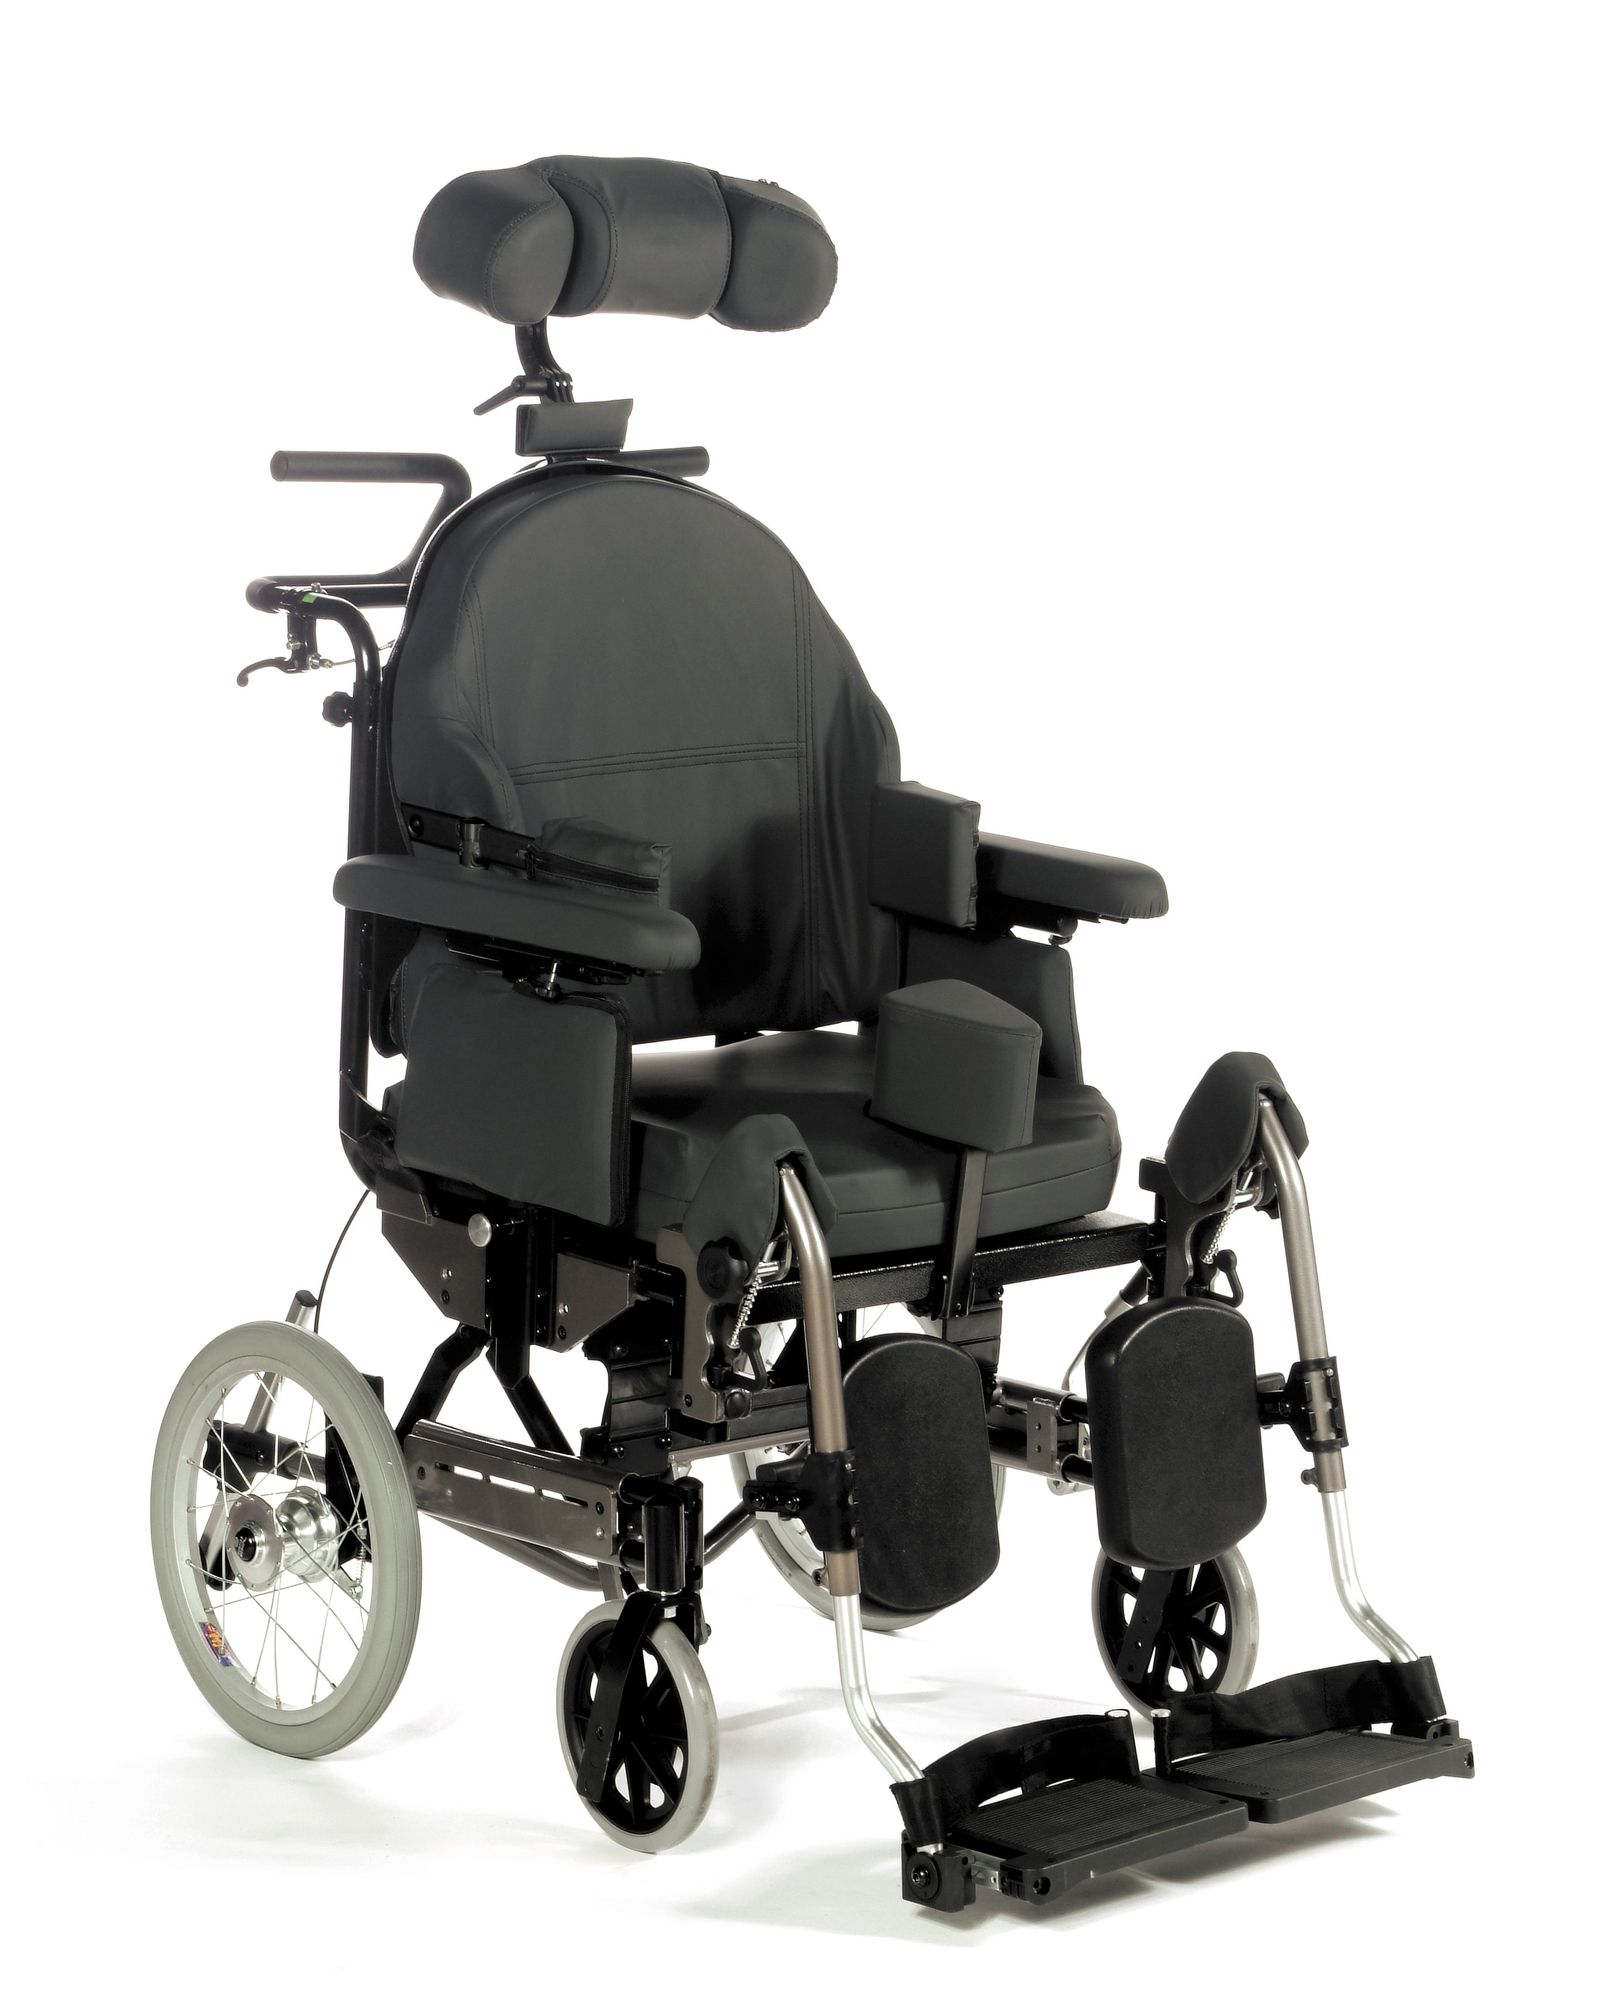 Breezy Relax 2 Multi Function Adjustable Wheelchair